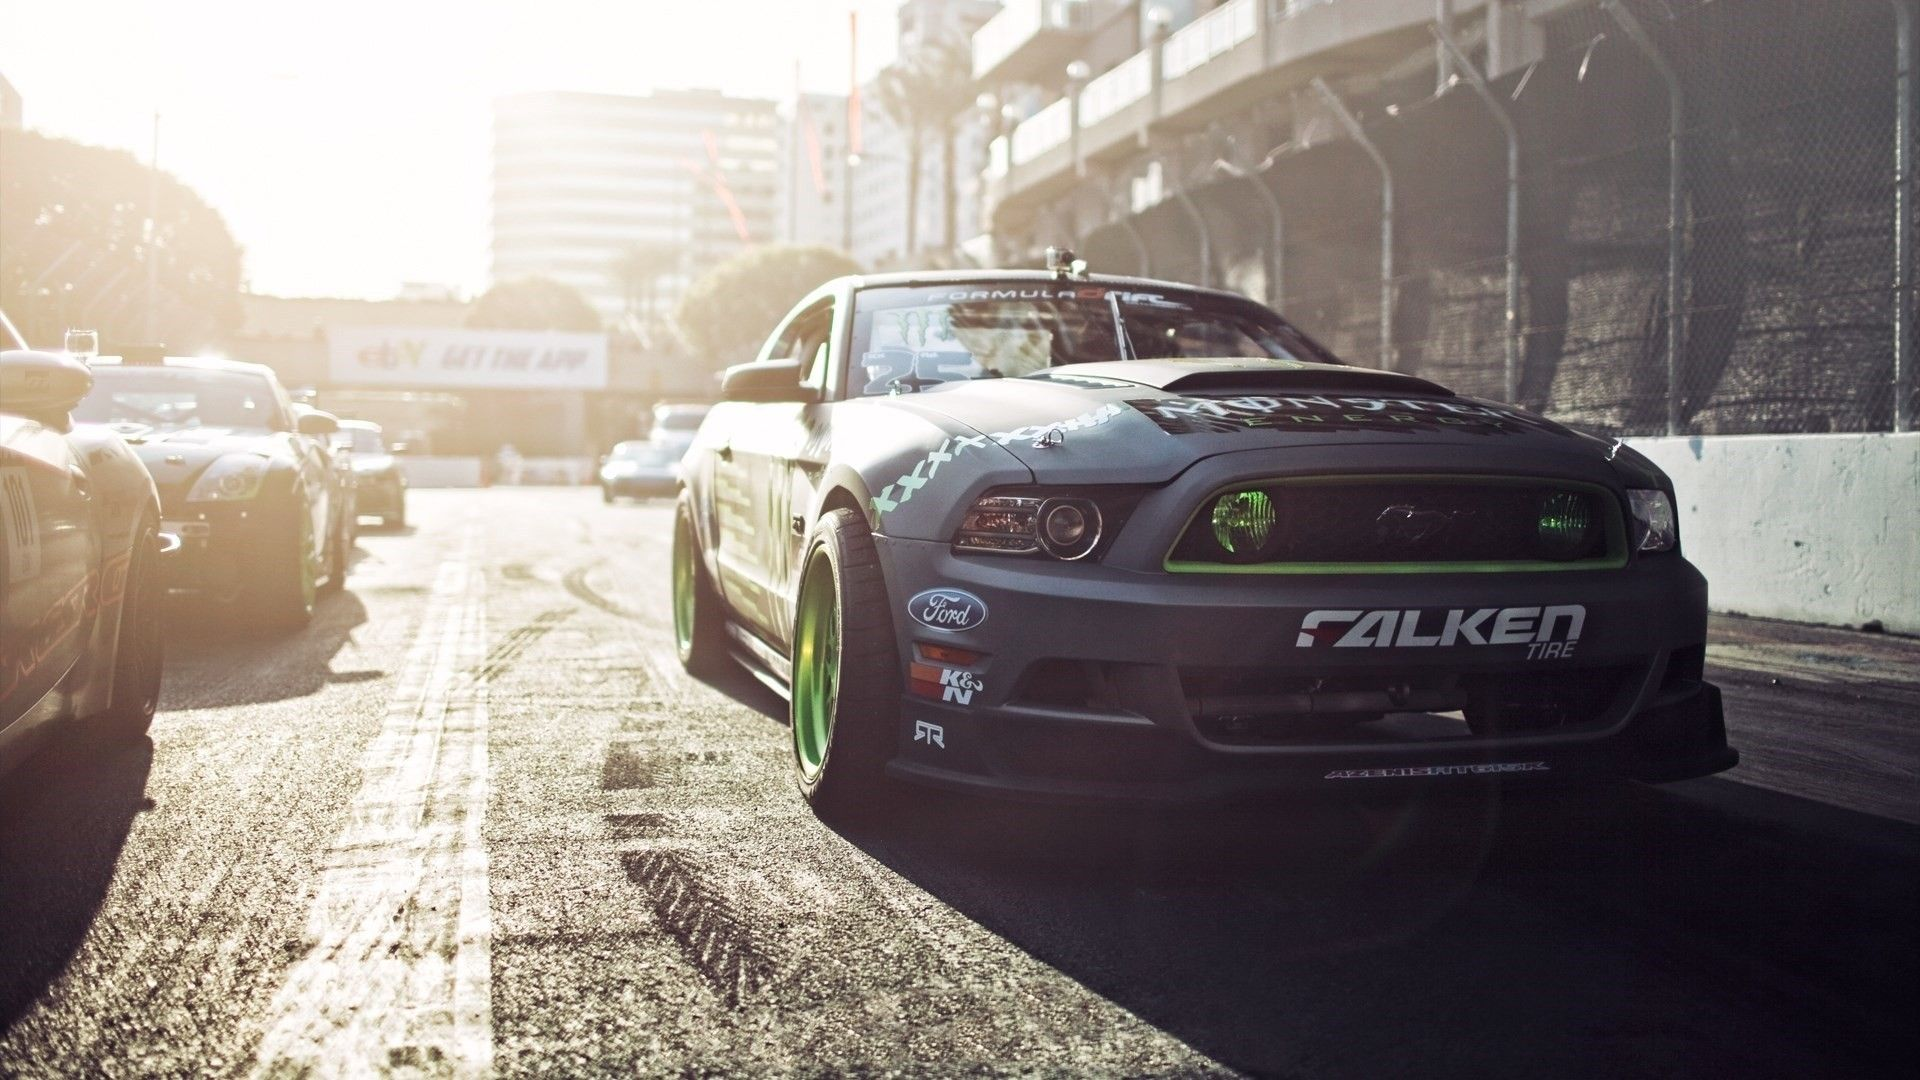 1920x1080 Ford Mustang, Car, Formula drift Wallpapers HD / Desktop and Mobile ...